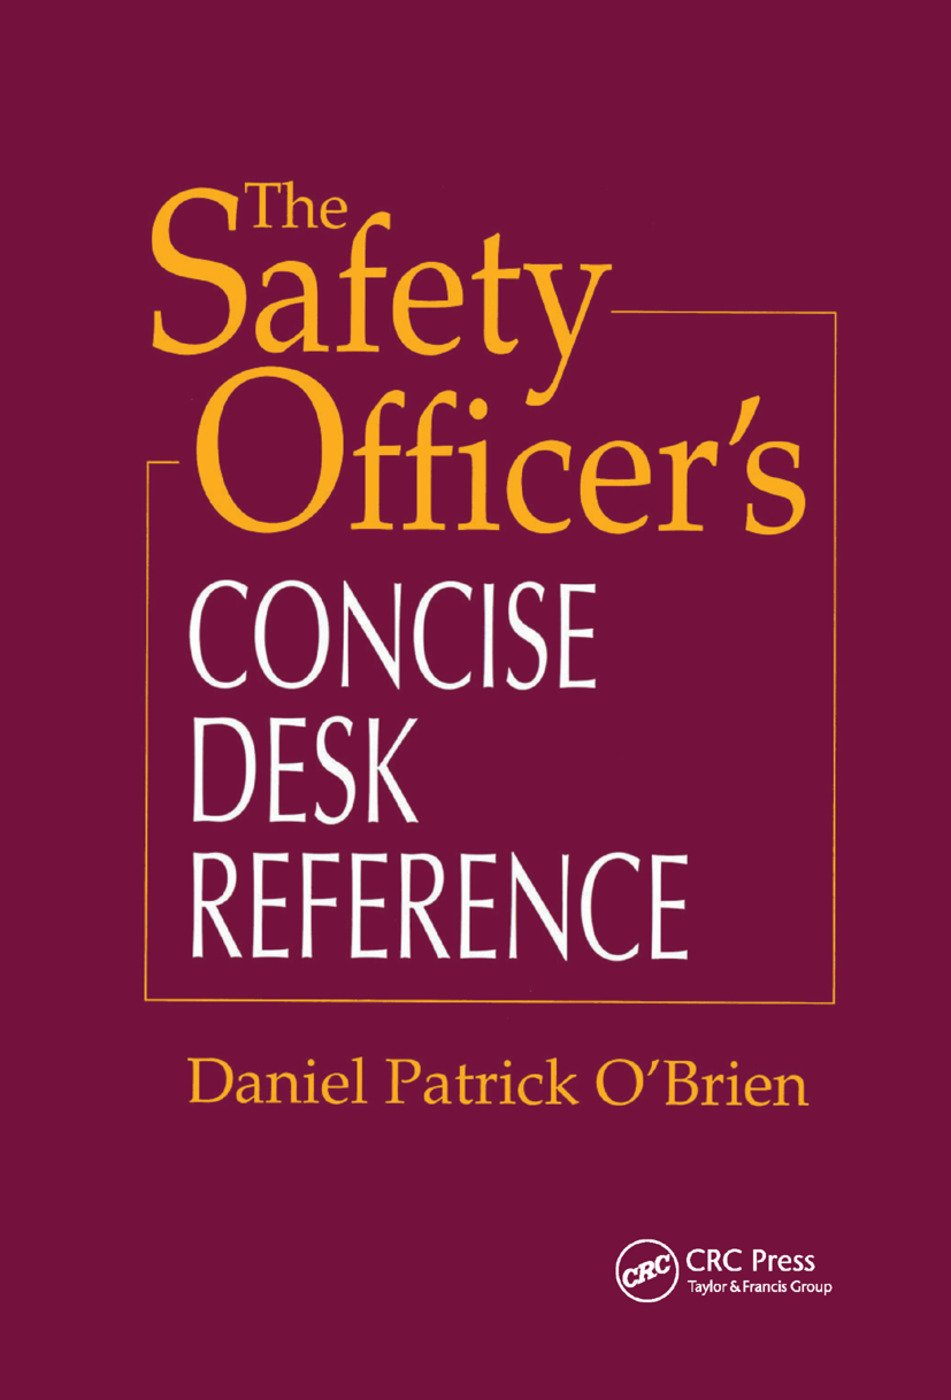 The Safety Officer's Concise Desk Reference: 1st Edition (Paperback) book cover